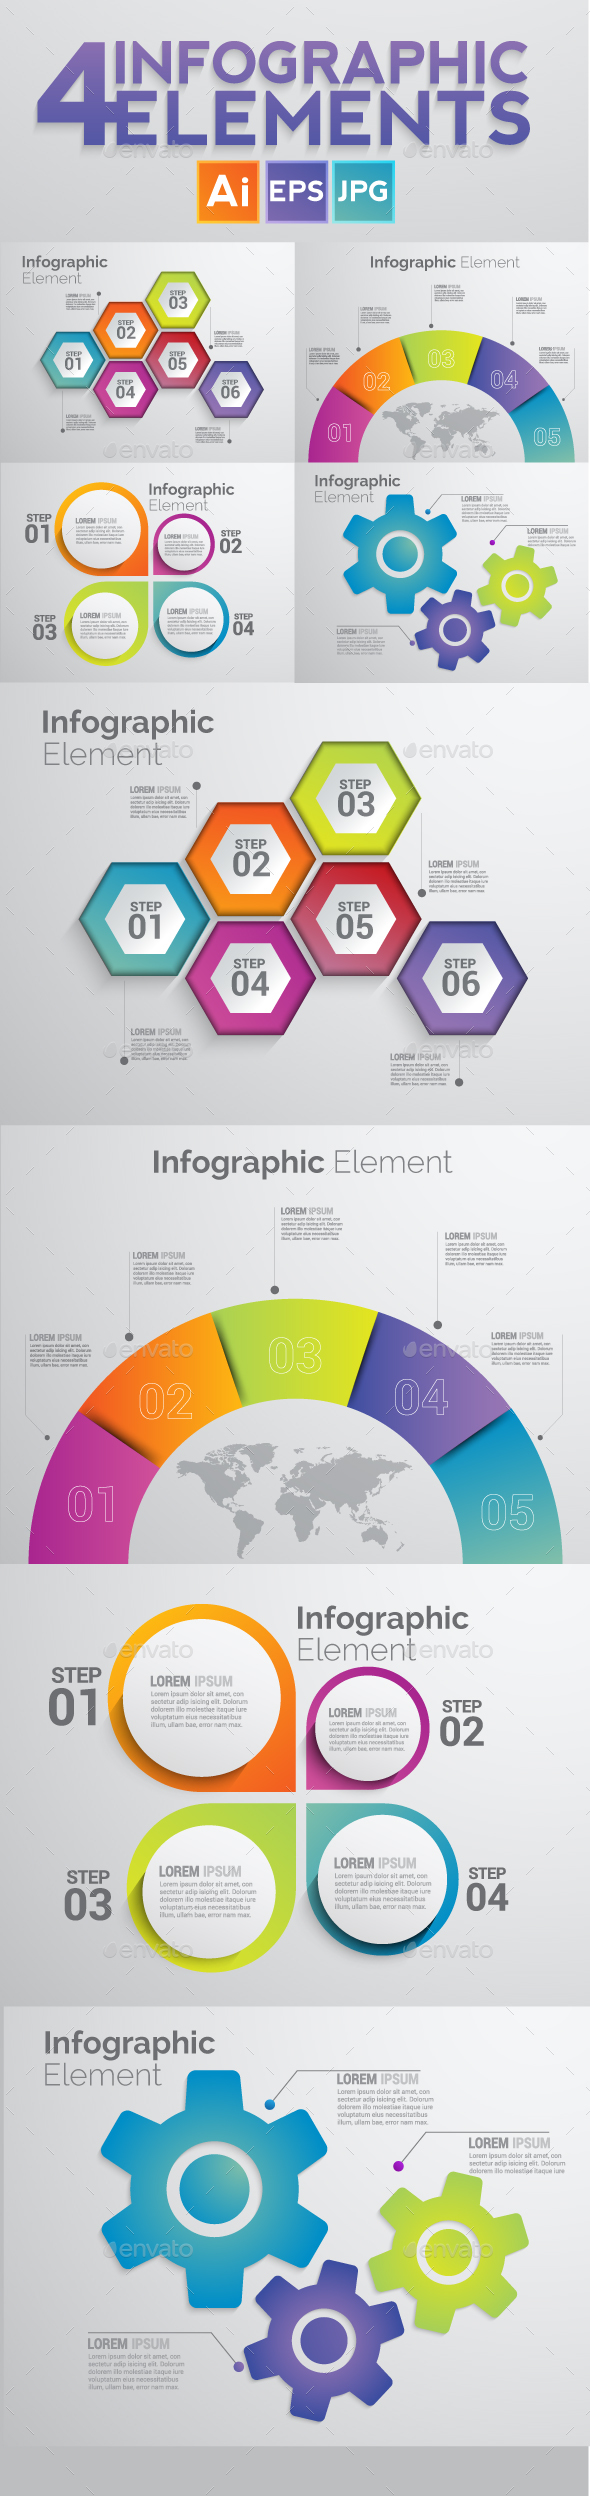 Set of 4 Infographic Elements Templates - Infographics